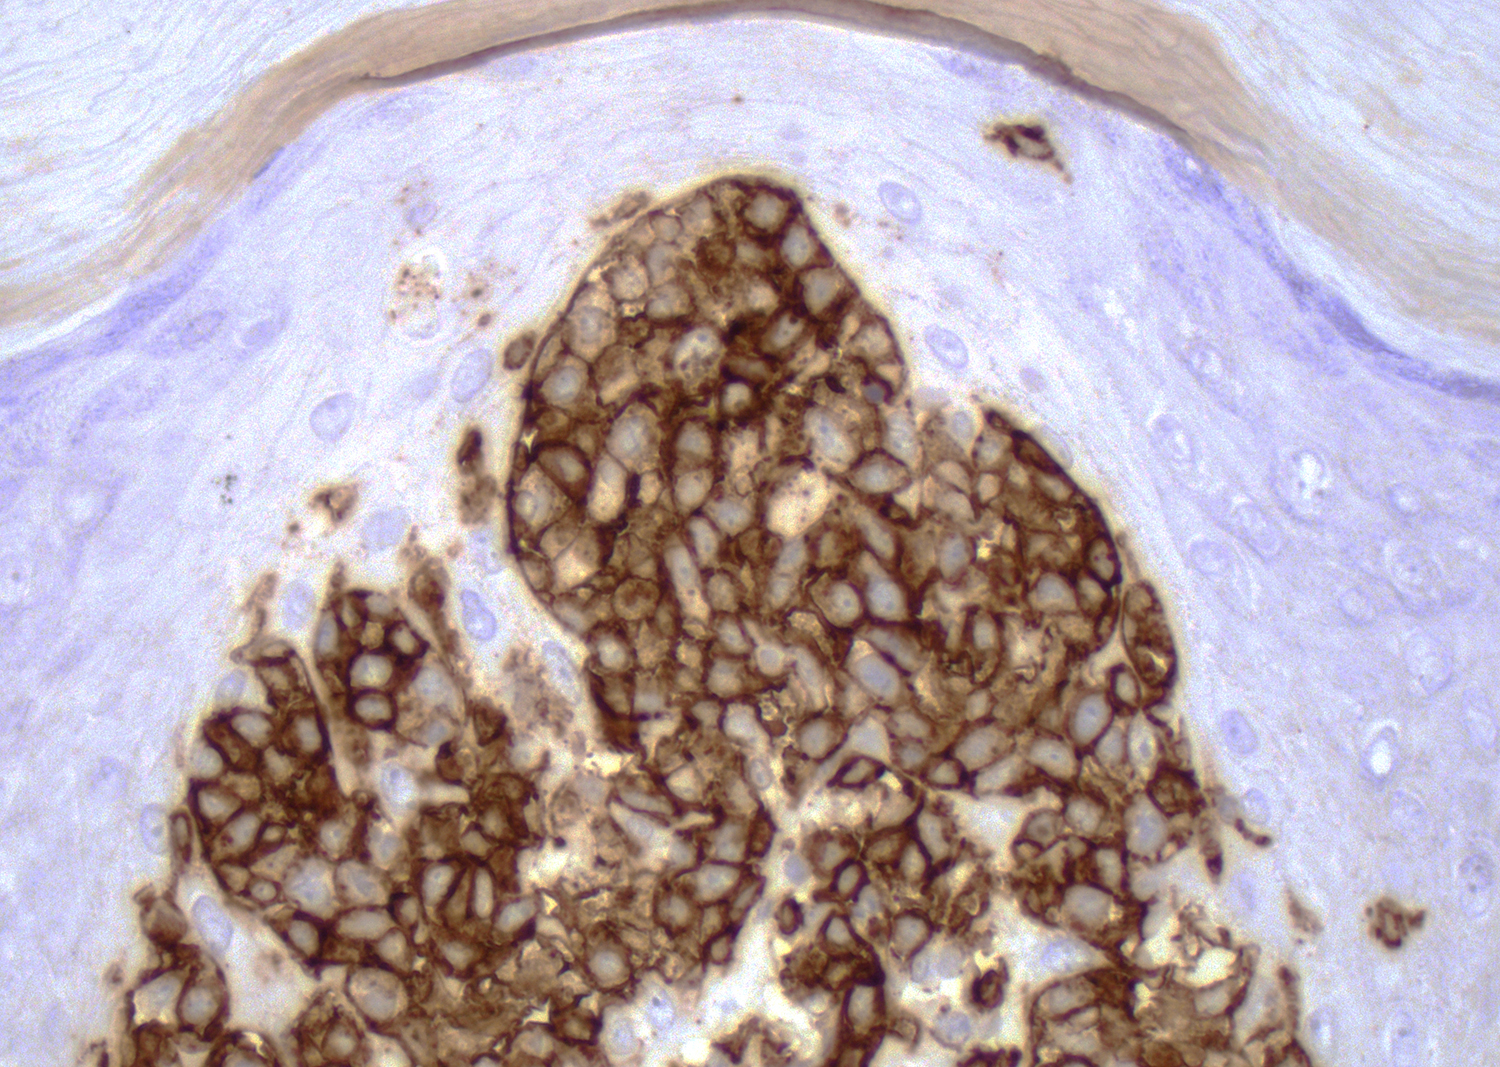 CD8 in pagetoid reticulosis